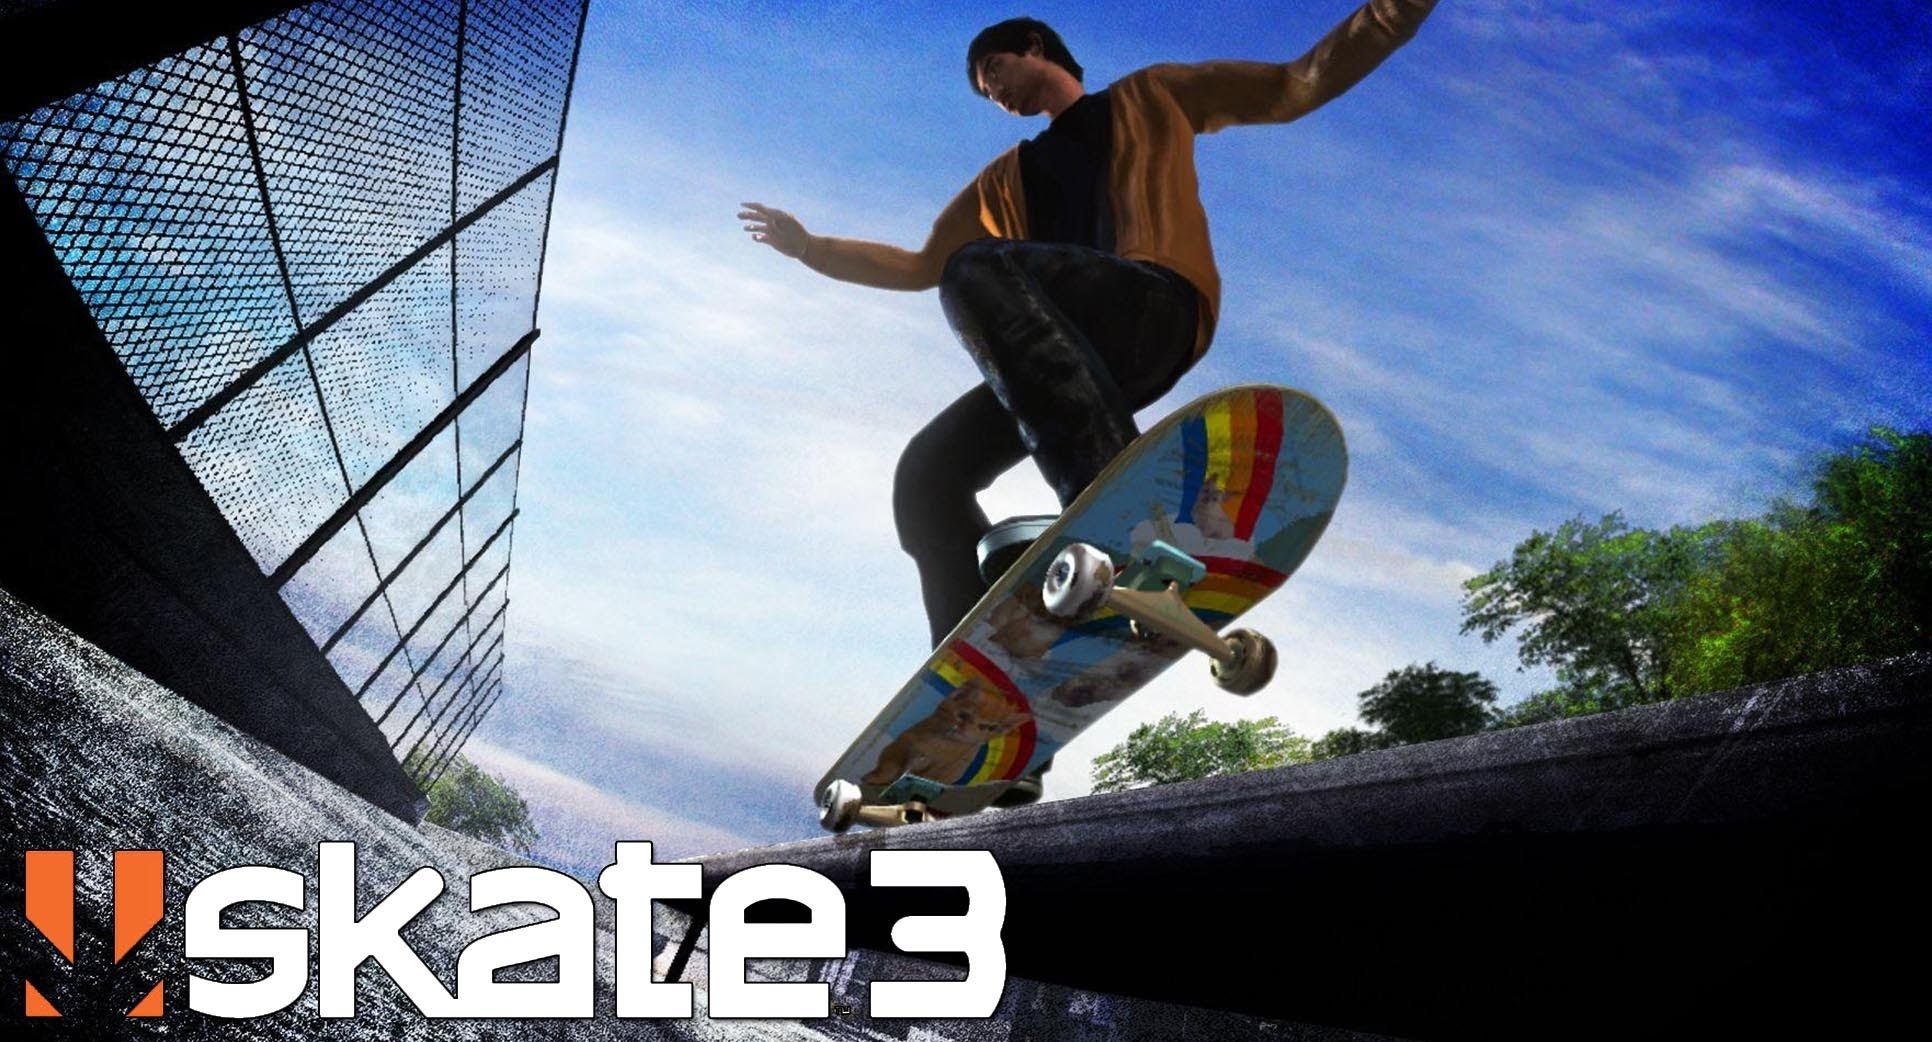 Player Skateboarding Games Free